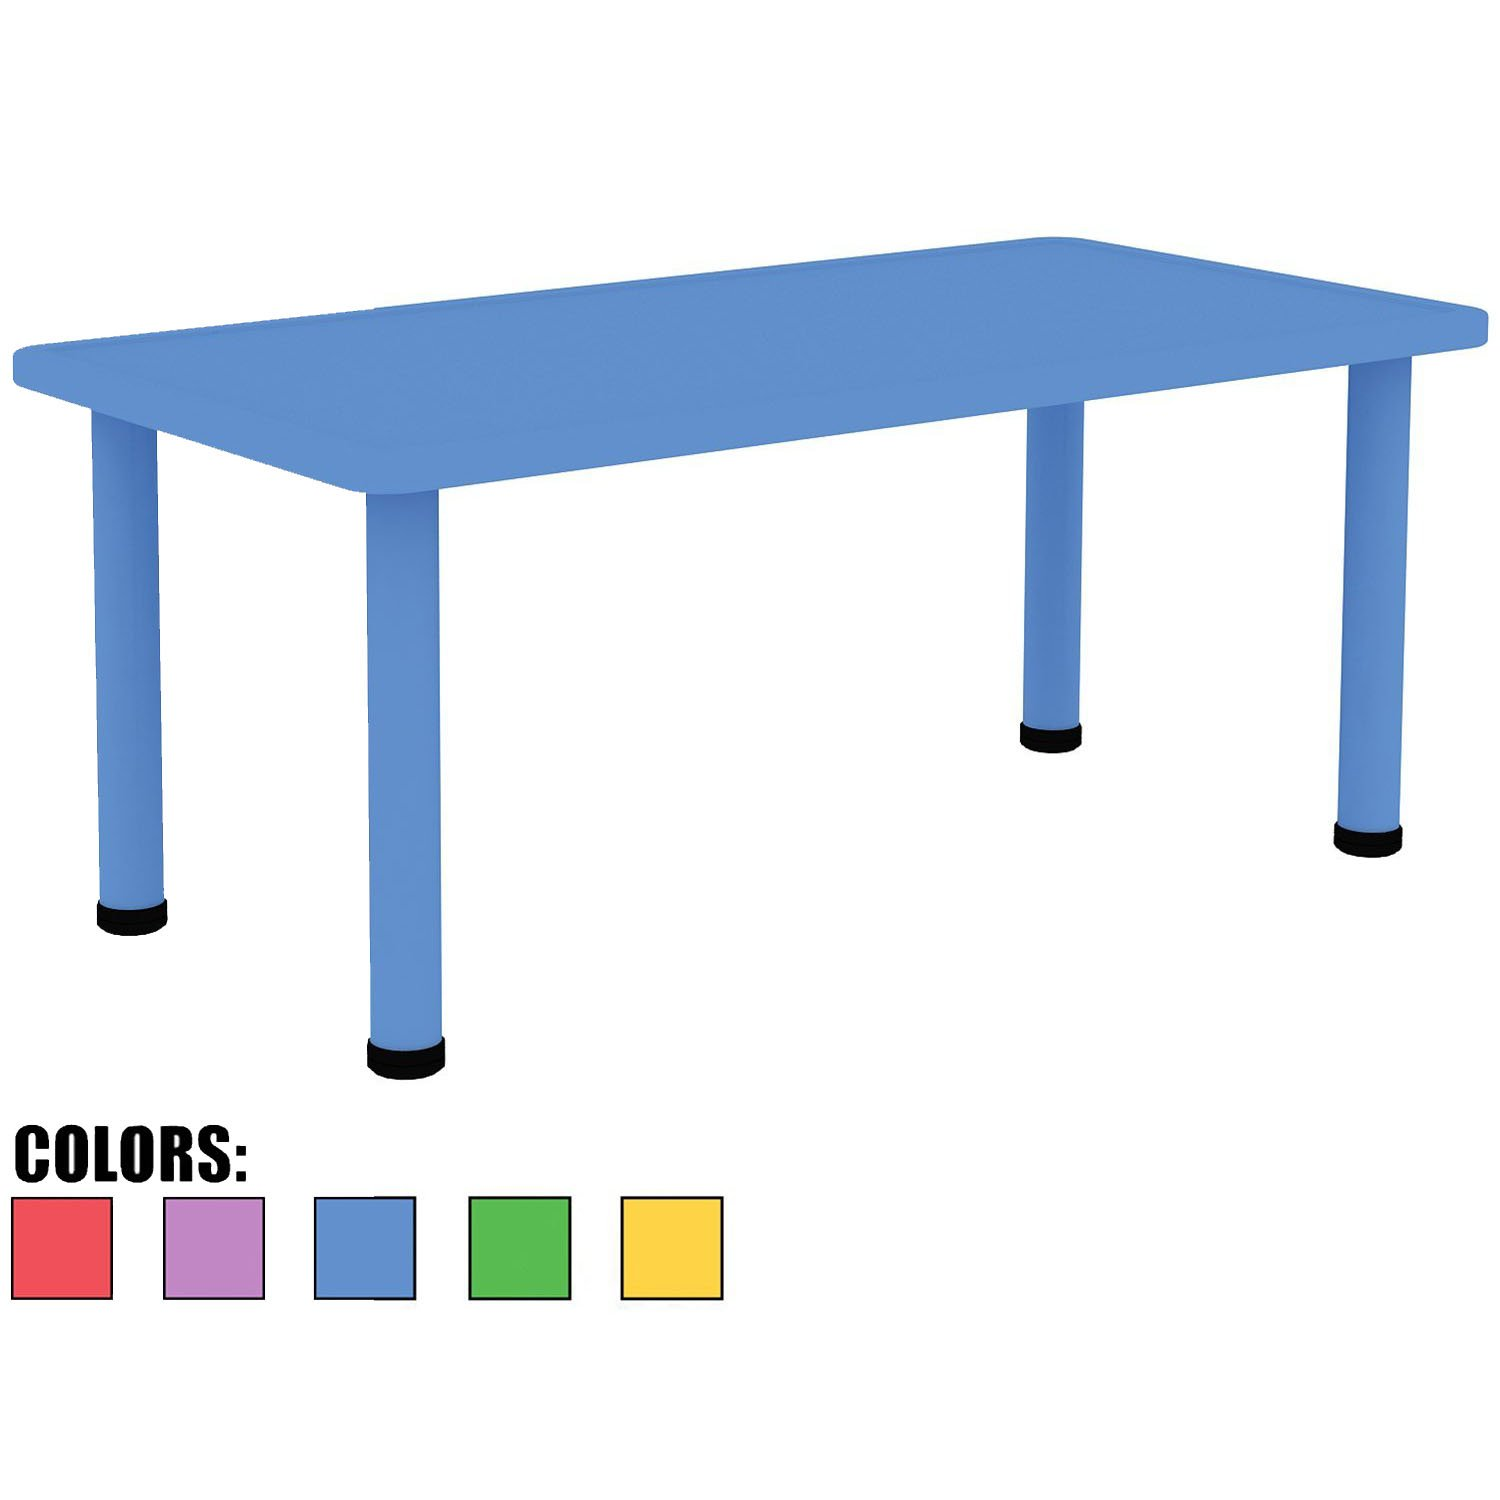 2xhome – Blue – Kids Table – Height Adjustable 18.25 inches to 19.25 inches - Rectangle Plastic Activity table With Metal legs for Toddler Child Furniture Preschool School Learn Play Indoor or Outdoor